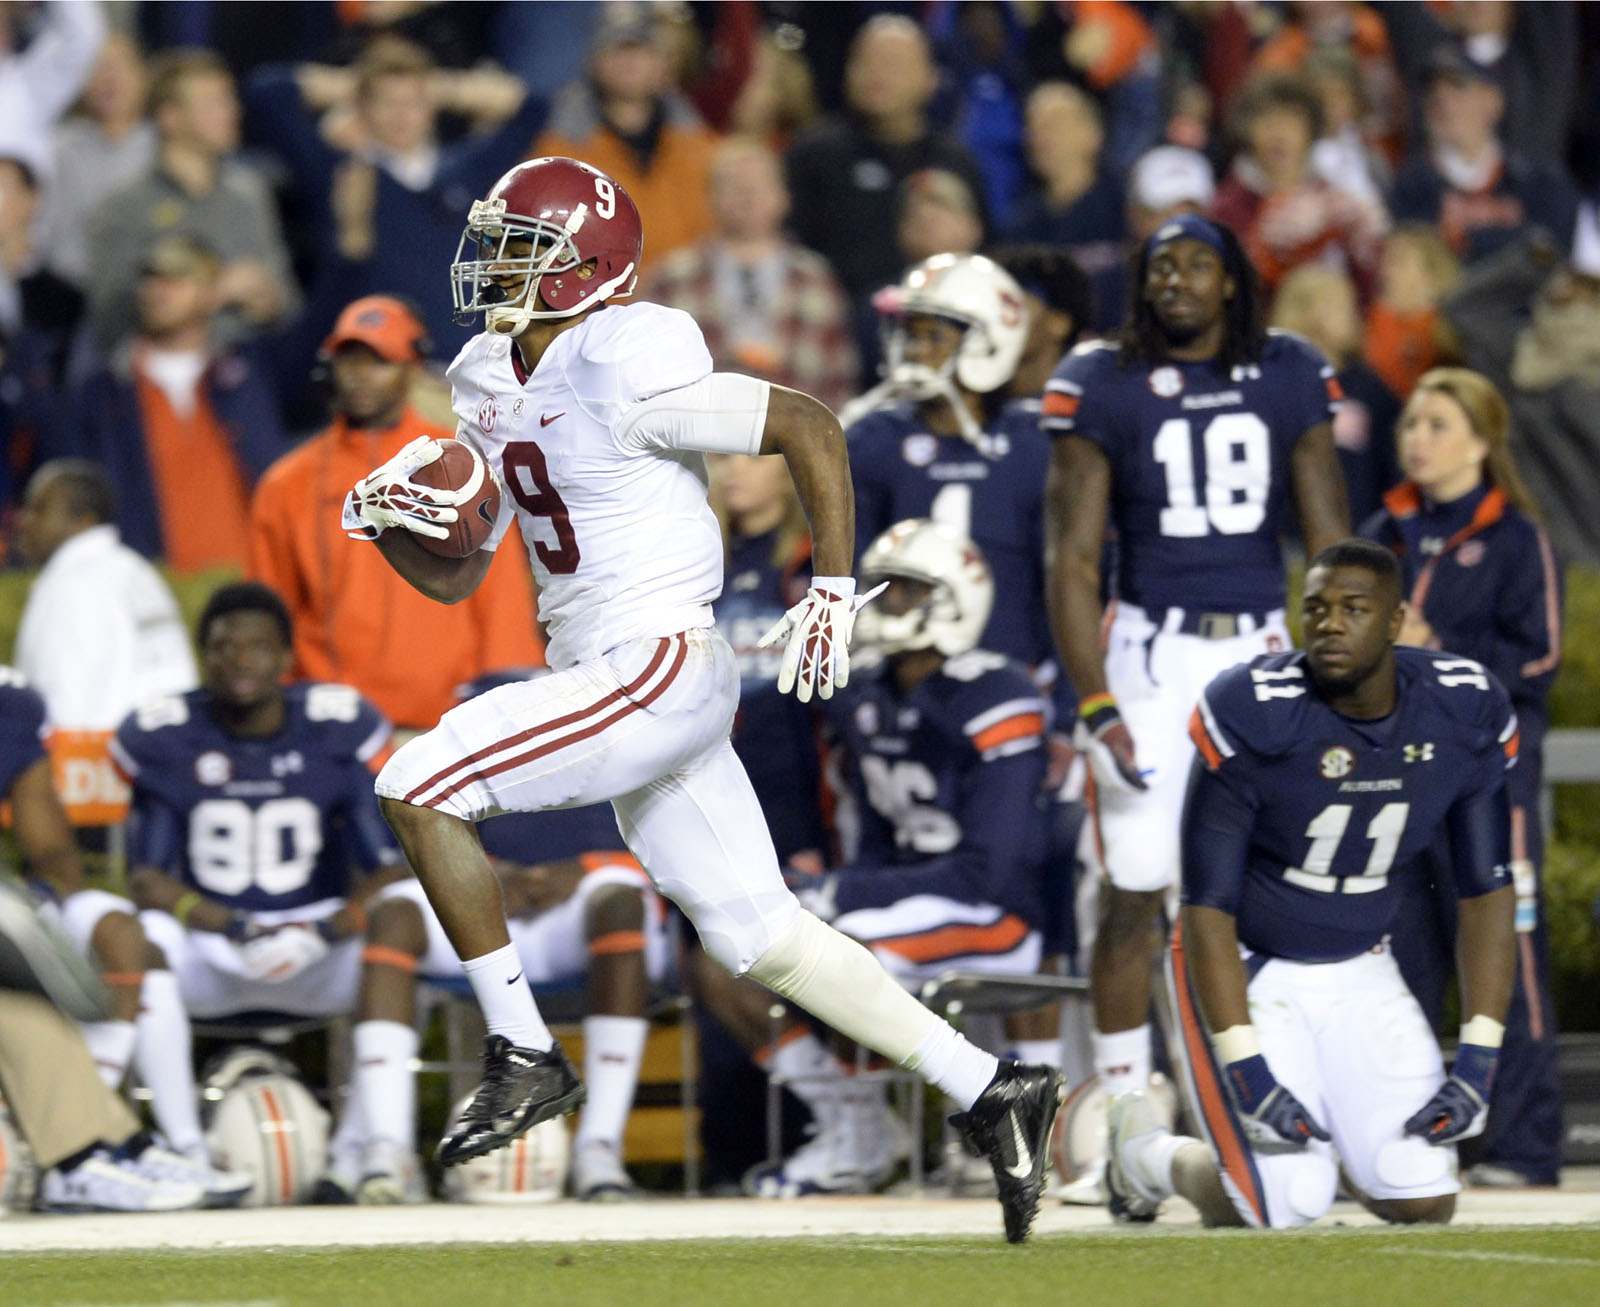 Alabama Crimson Tide wide receiver Amari Cooper (9) makes a catch and runs for a 99 yard touchdown against the Auburn Tigers during the fourth quarter at Jordan Hare Stadium. (John David Mercer/USA TODAY Sports)